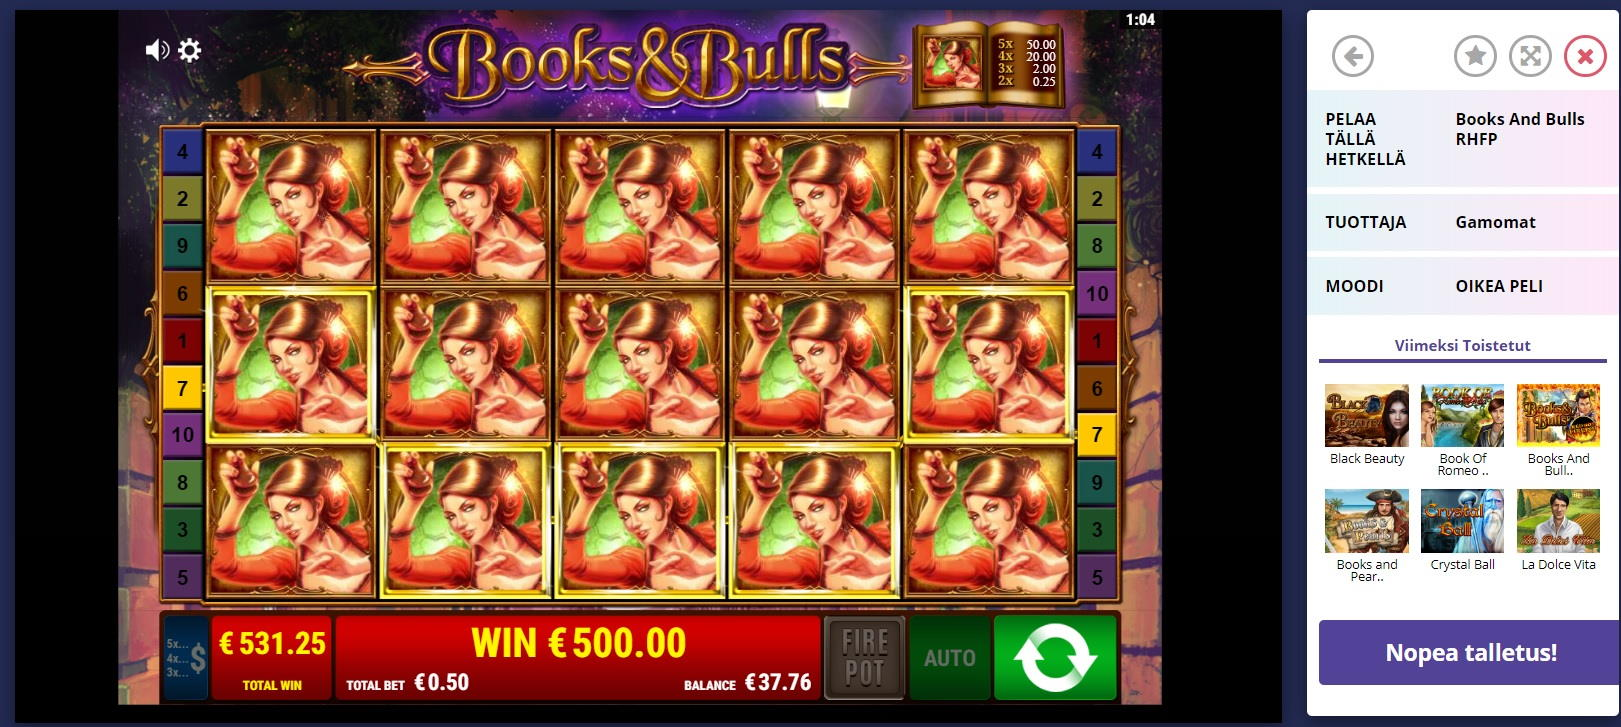 Books and Bulls Big Win Picture